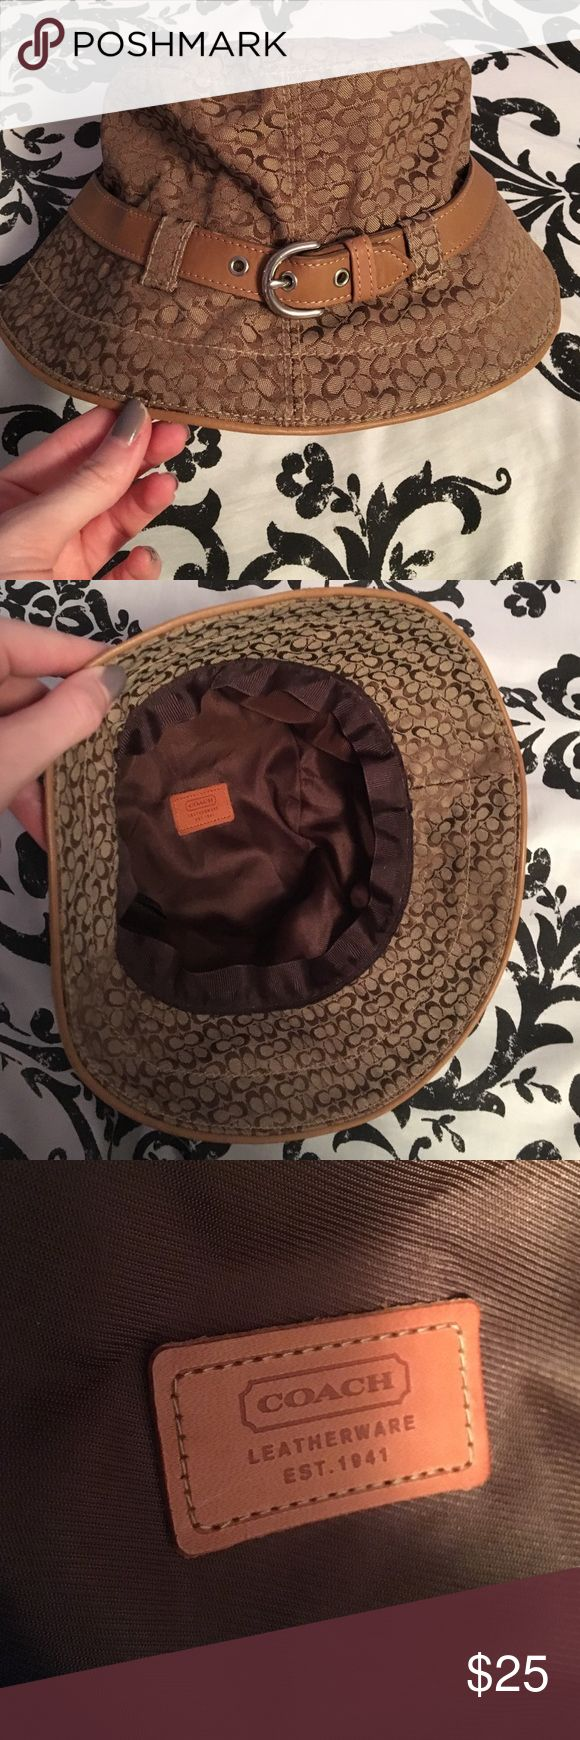 Coach Hat Authentic Coach hat with brown belt. New without tags. Coach Accessories Hats